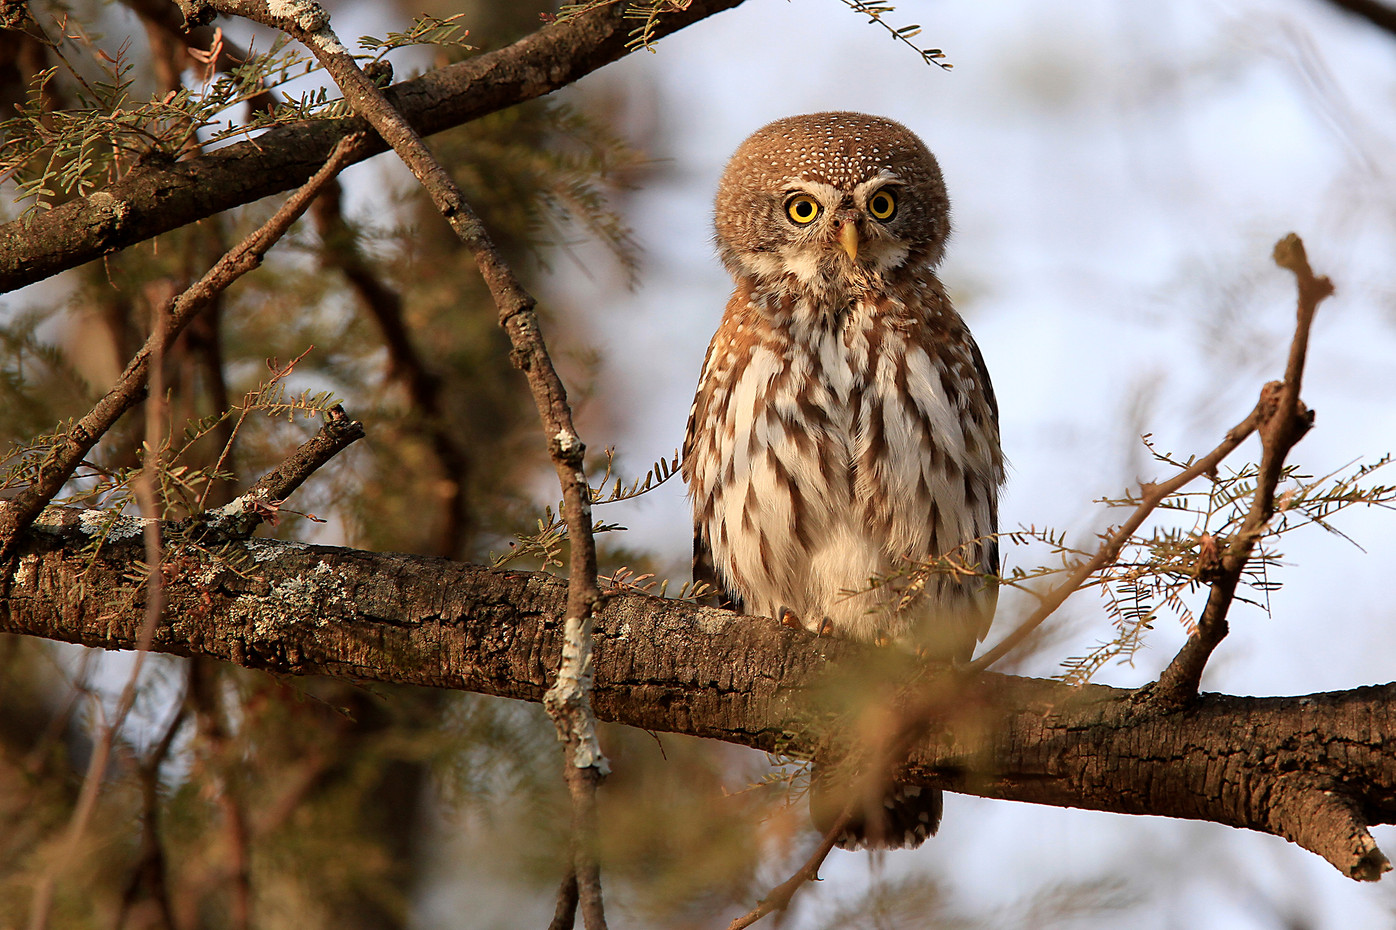 Pearl-spotted Owl in the Serengeti NP, Tanzania